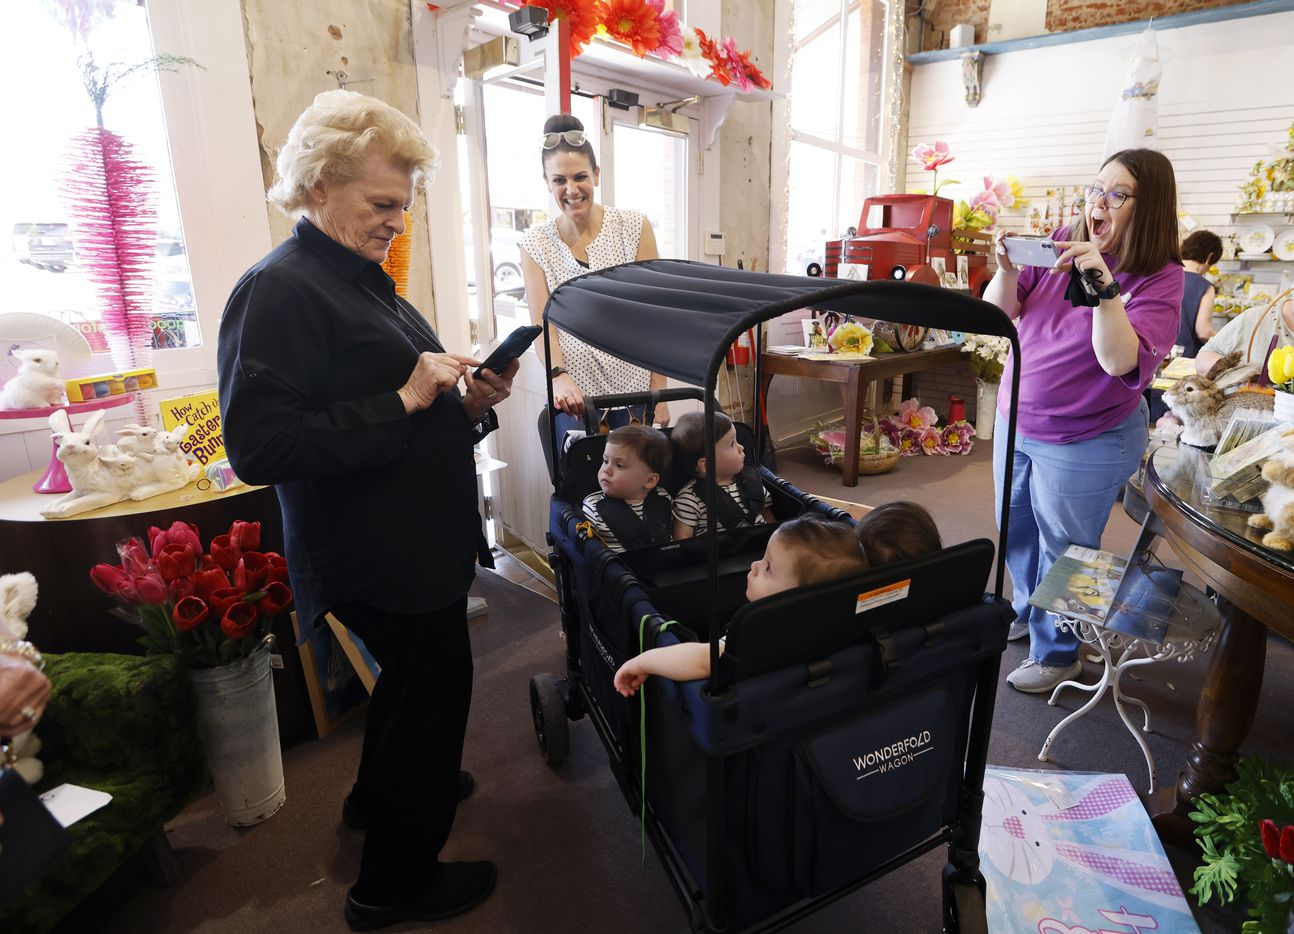 Sally Bultmann (far left), owner of the store Good Things for All Seasons and Leslie Cave (far right) take photos of Harrison Hardy, Henry and Hudson Marr as their mother Jenny Marr looks on inside the store on Friday, March 26, 2021 in Grapevine, Texas.